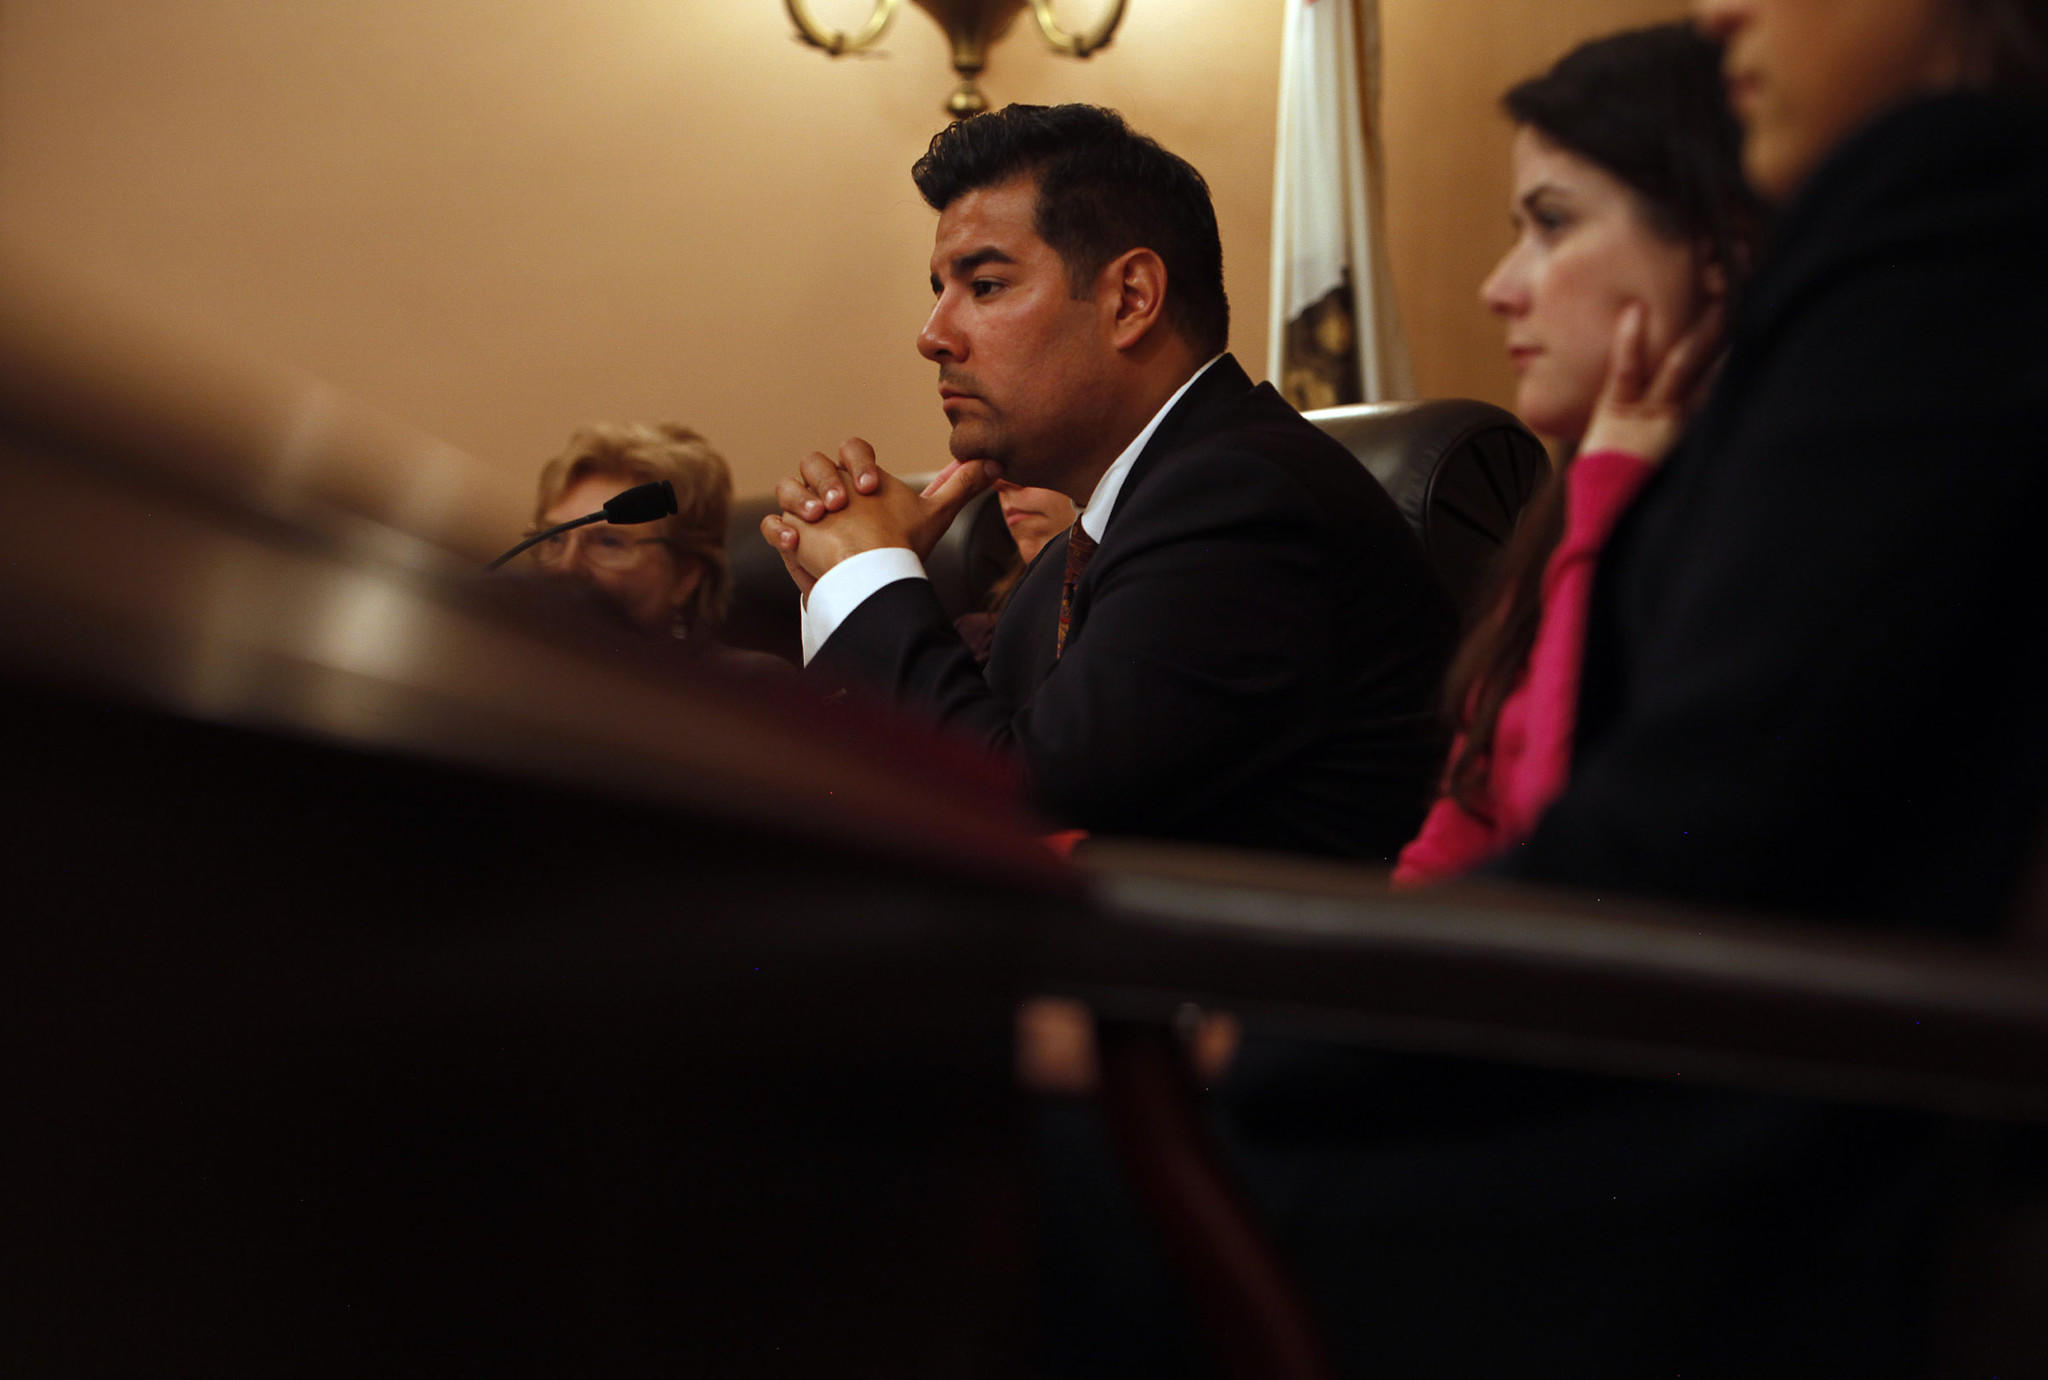 State Sen. Ricardo Lara (D-Bell Gardens) saw his bill aimed at reducing deportations for minor crimes approved by the Senate.